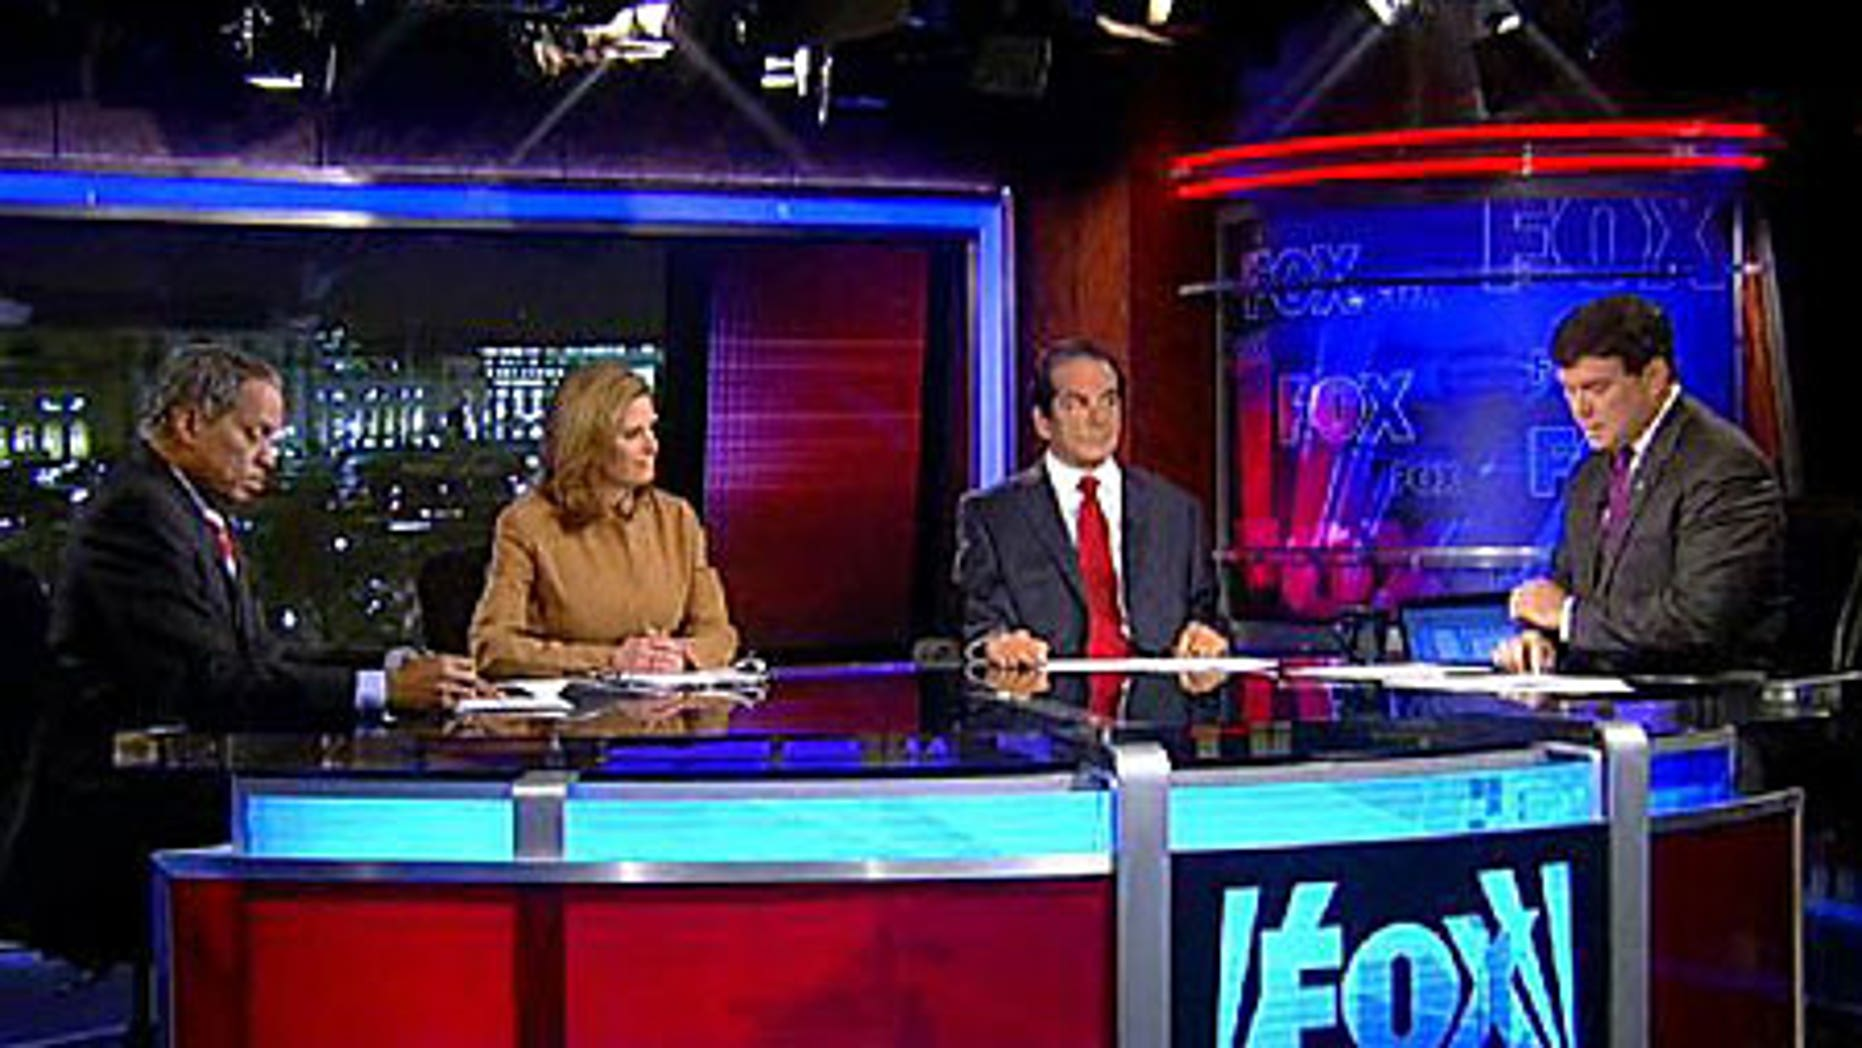 From left: Juan Williams, Nina Easton, Charles Krauthammer and Bret Baier